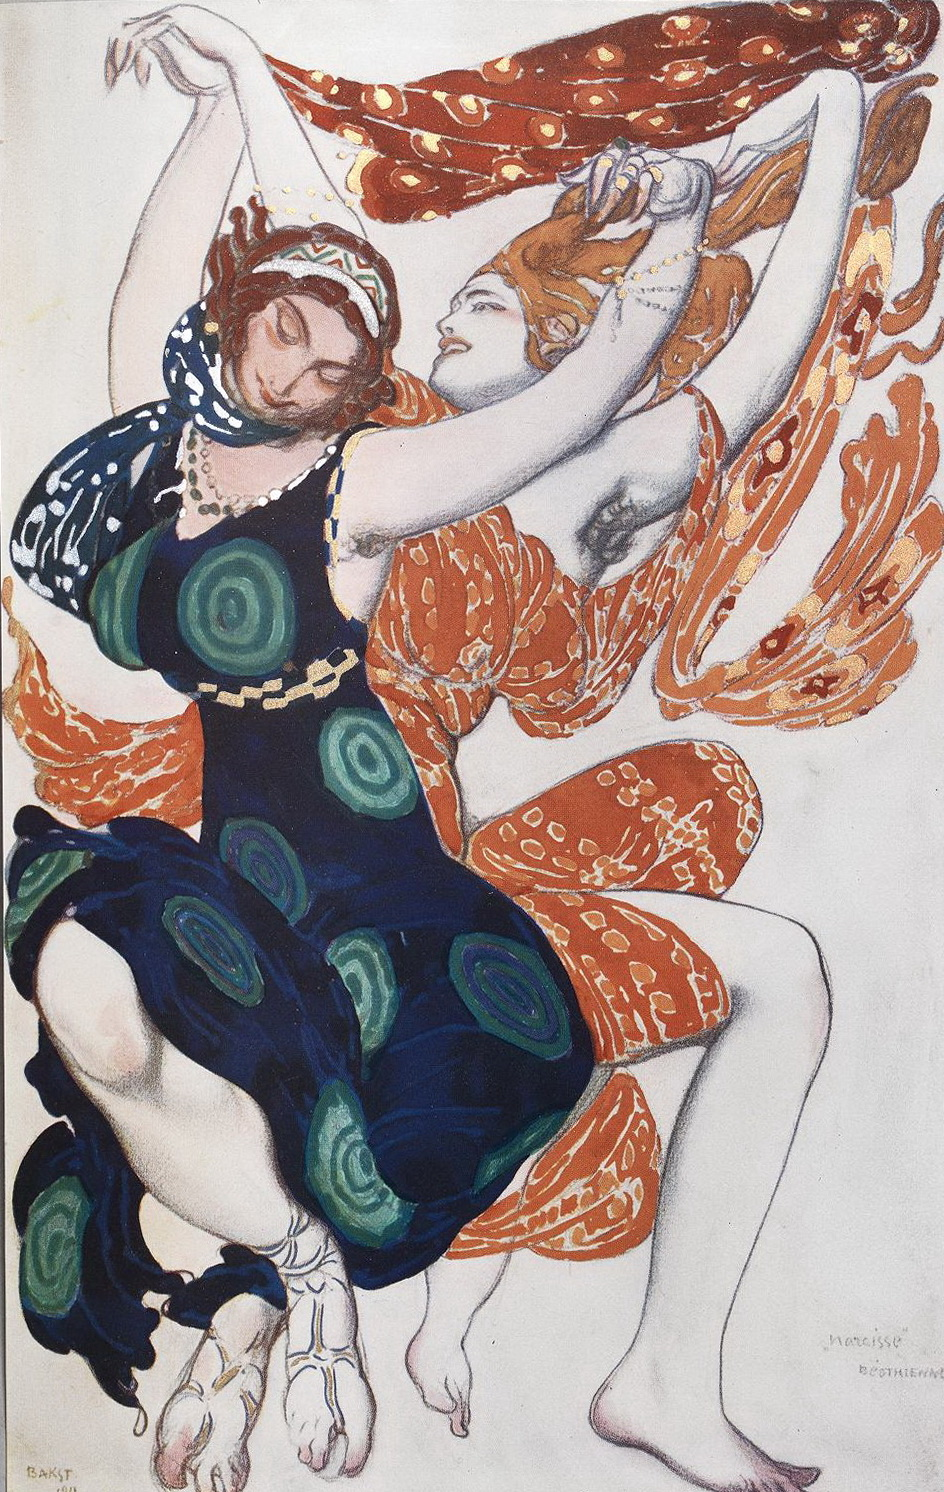 http://upload.wikimedia.org/wikipedia/commons/a/a6/Leon_Bakst_003.jpg